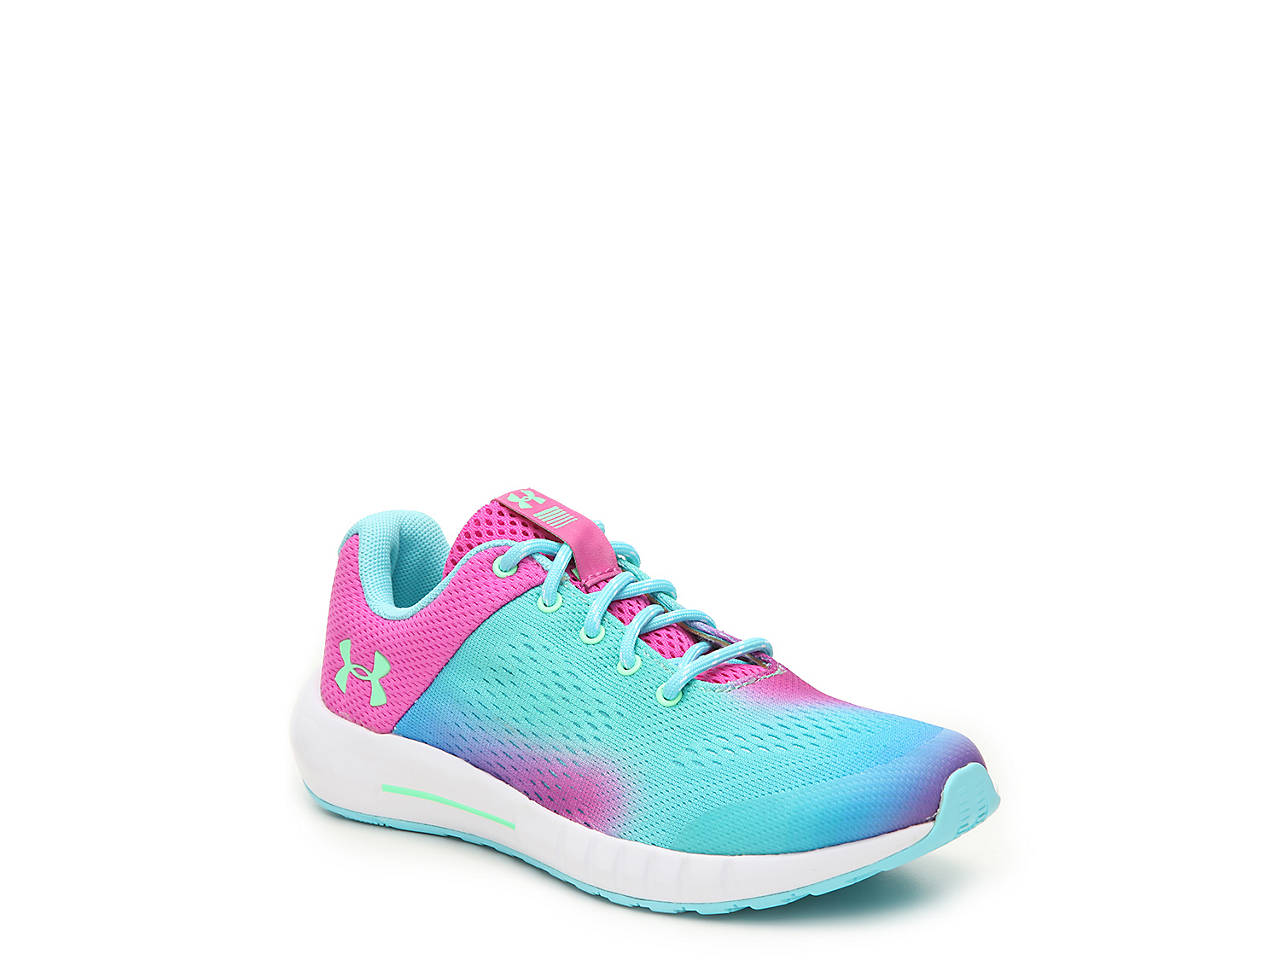 dde4b3f7 Under Armour Pursuit Prism Toddler & Youth Running Shoe Kids Shoes   DSW